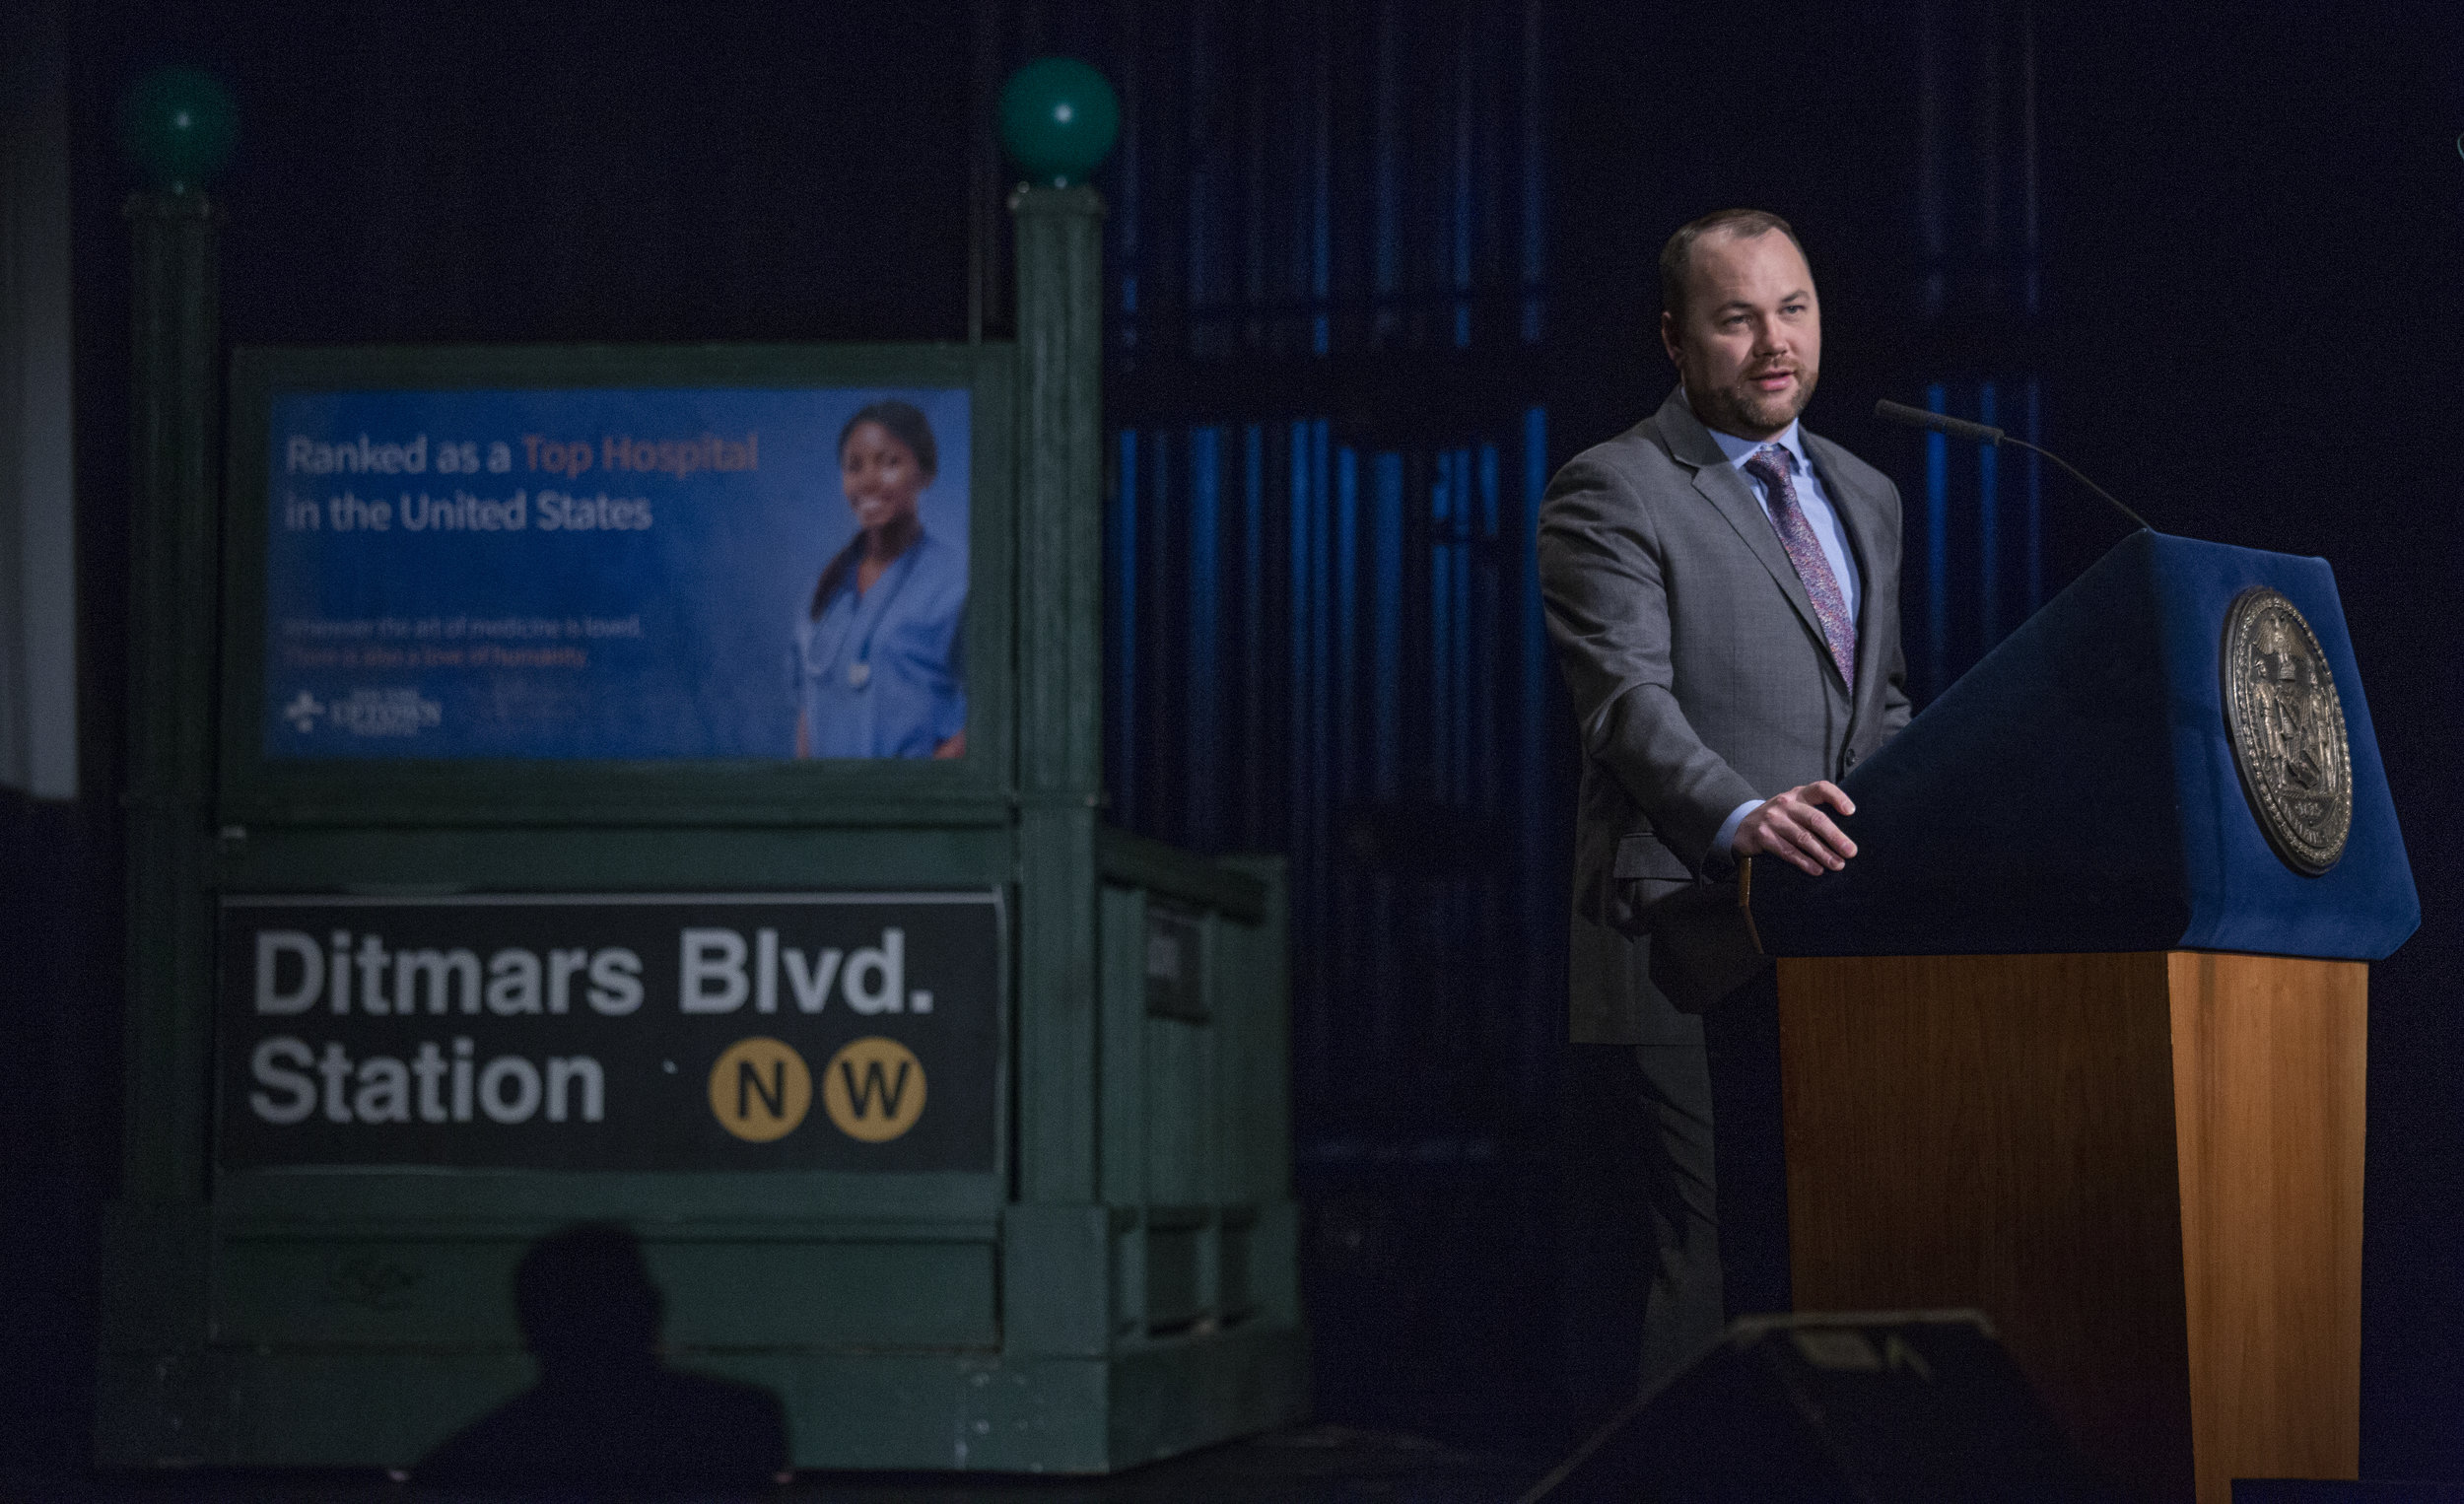 City Council Speaker Corey Johnson delivers his first State of the City Address in front of an Astoria subway station prop at LaGuardia Community College. Photo via the City Council/Flickr.